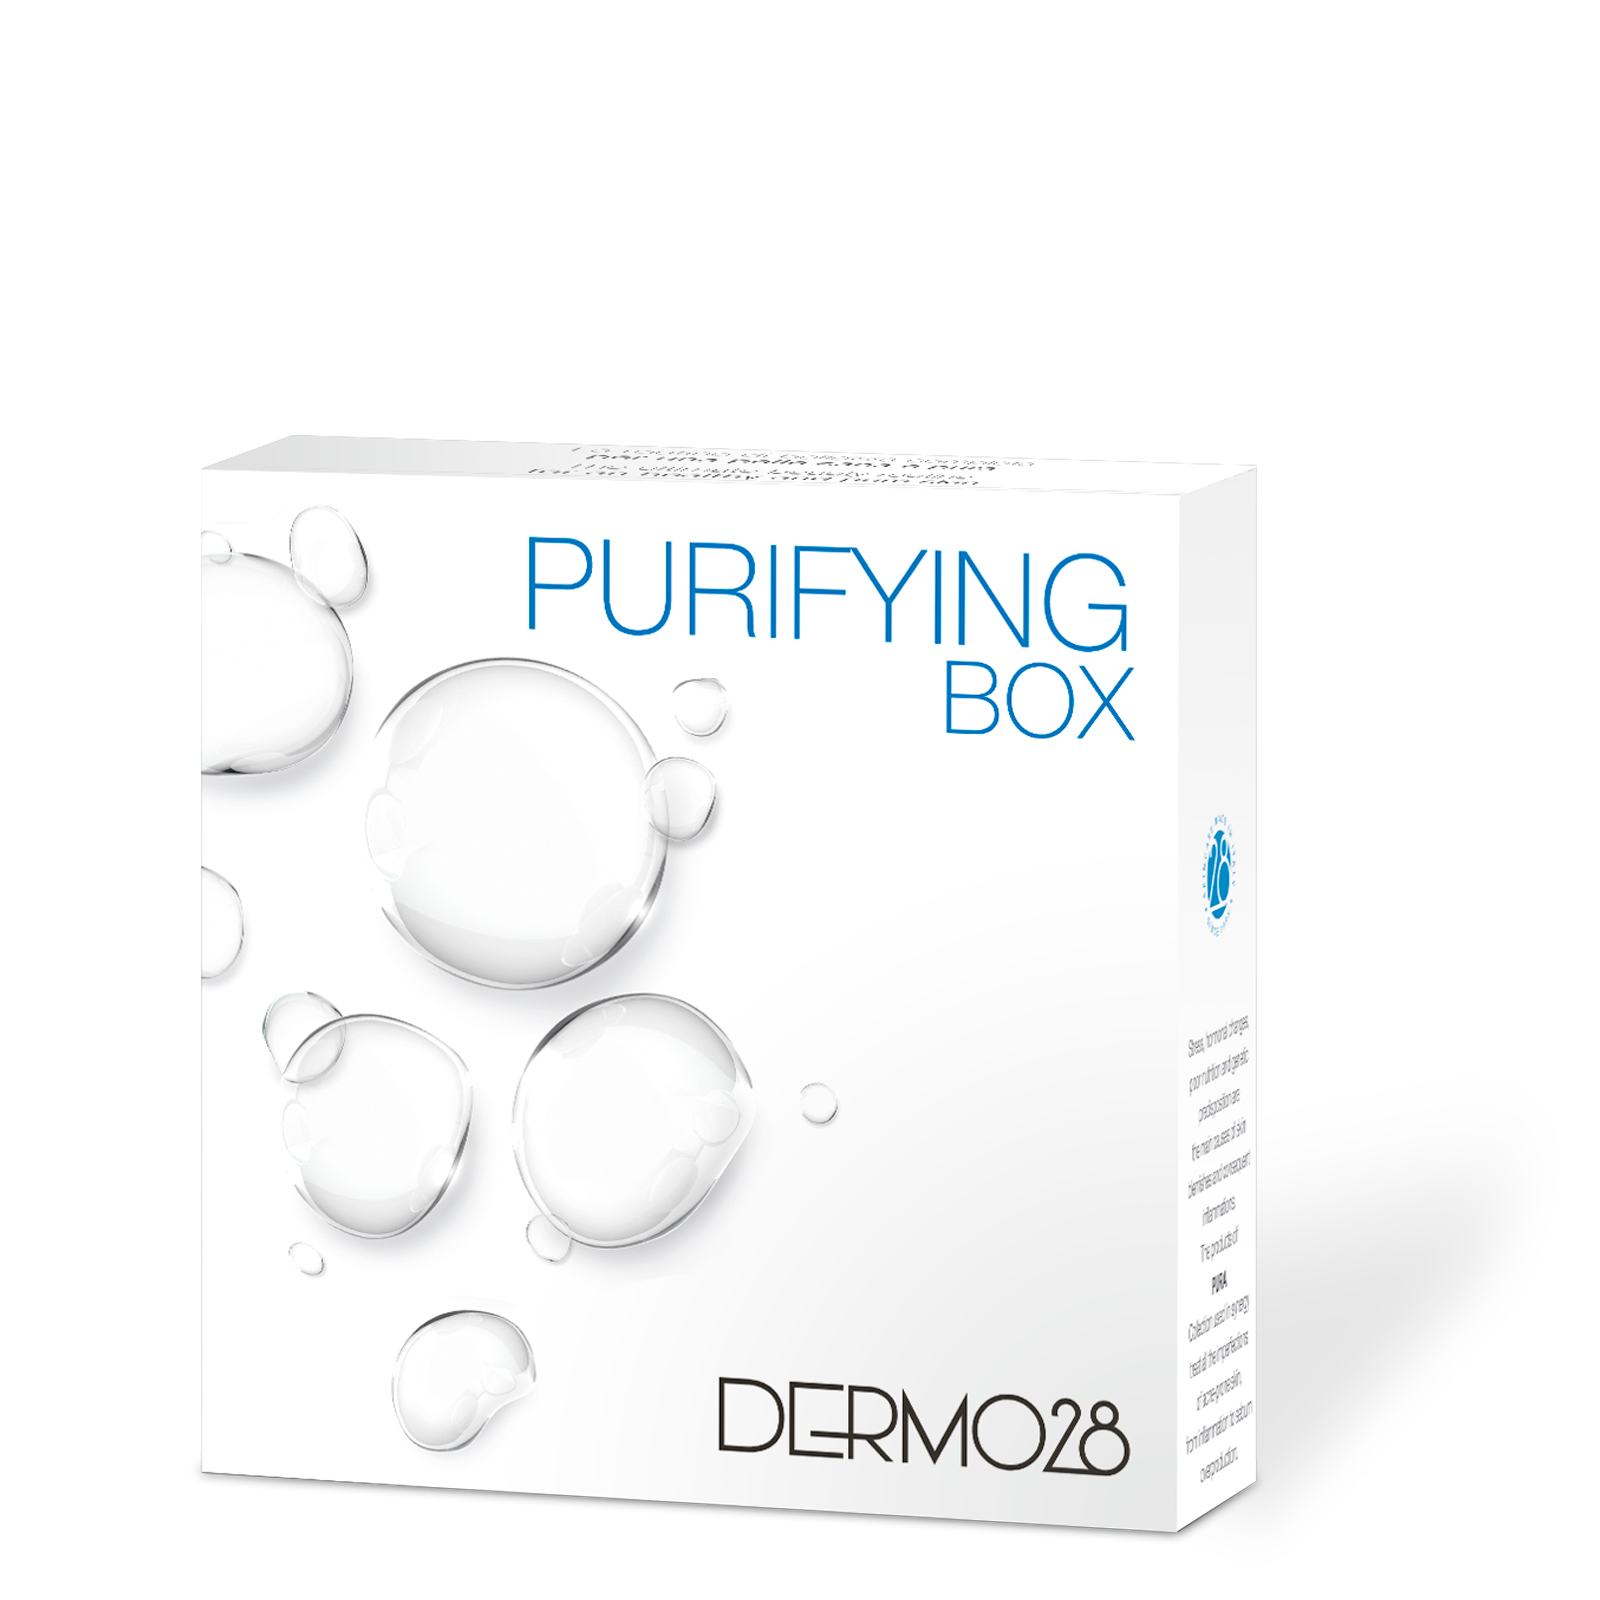 Order Online Dermo28 Purifying Box